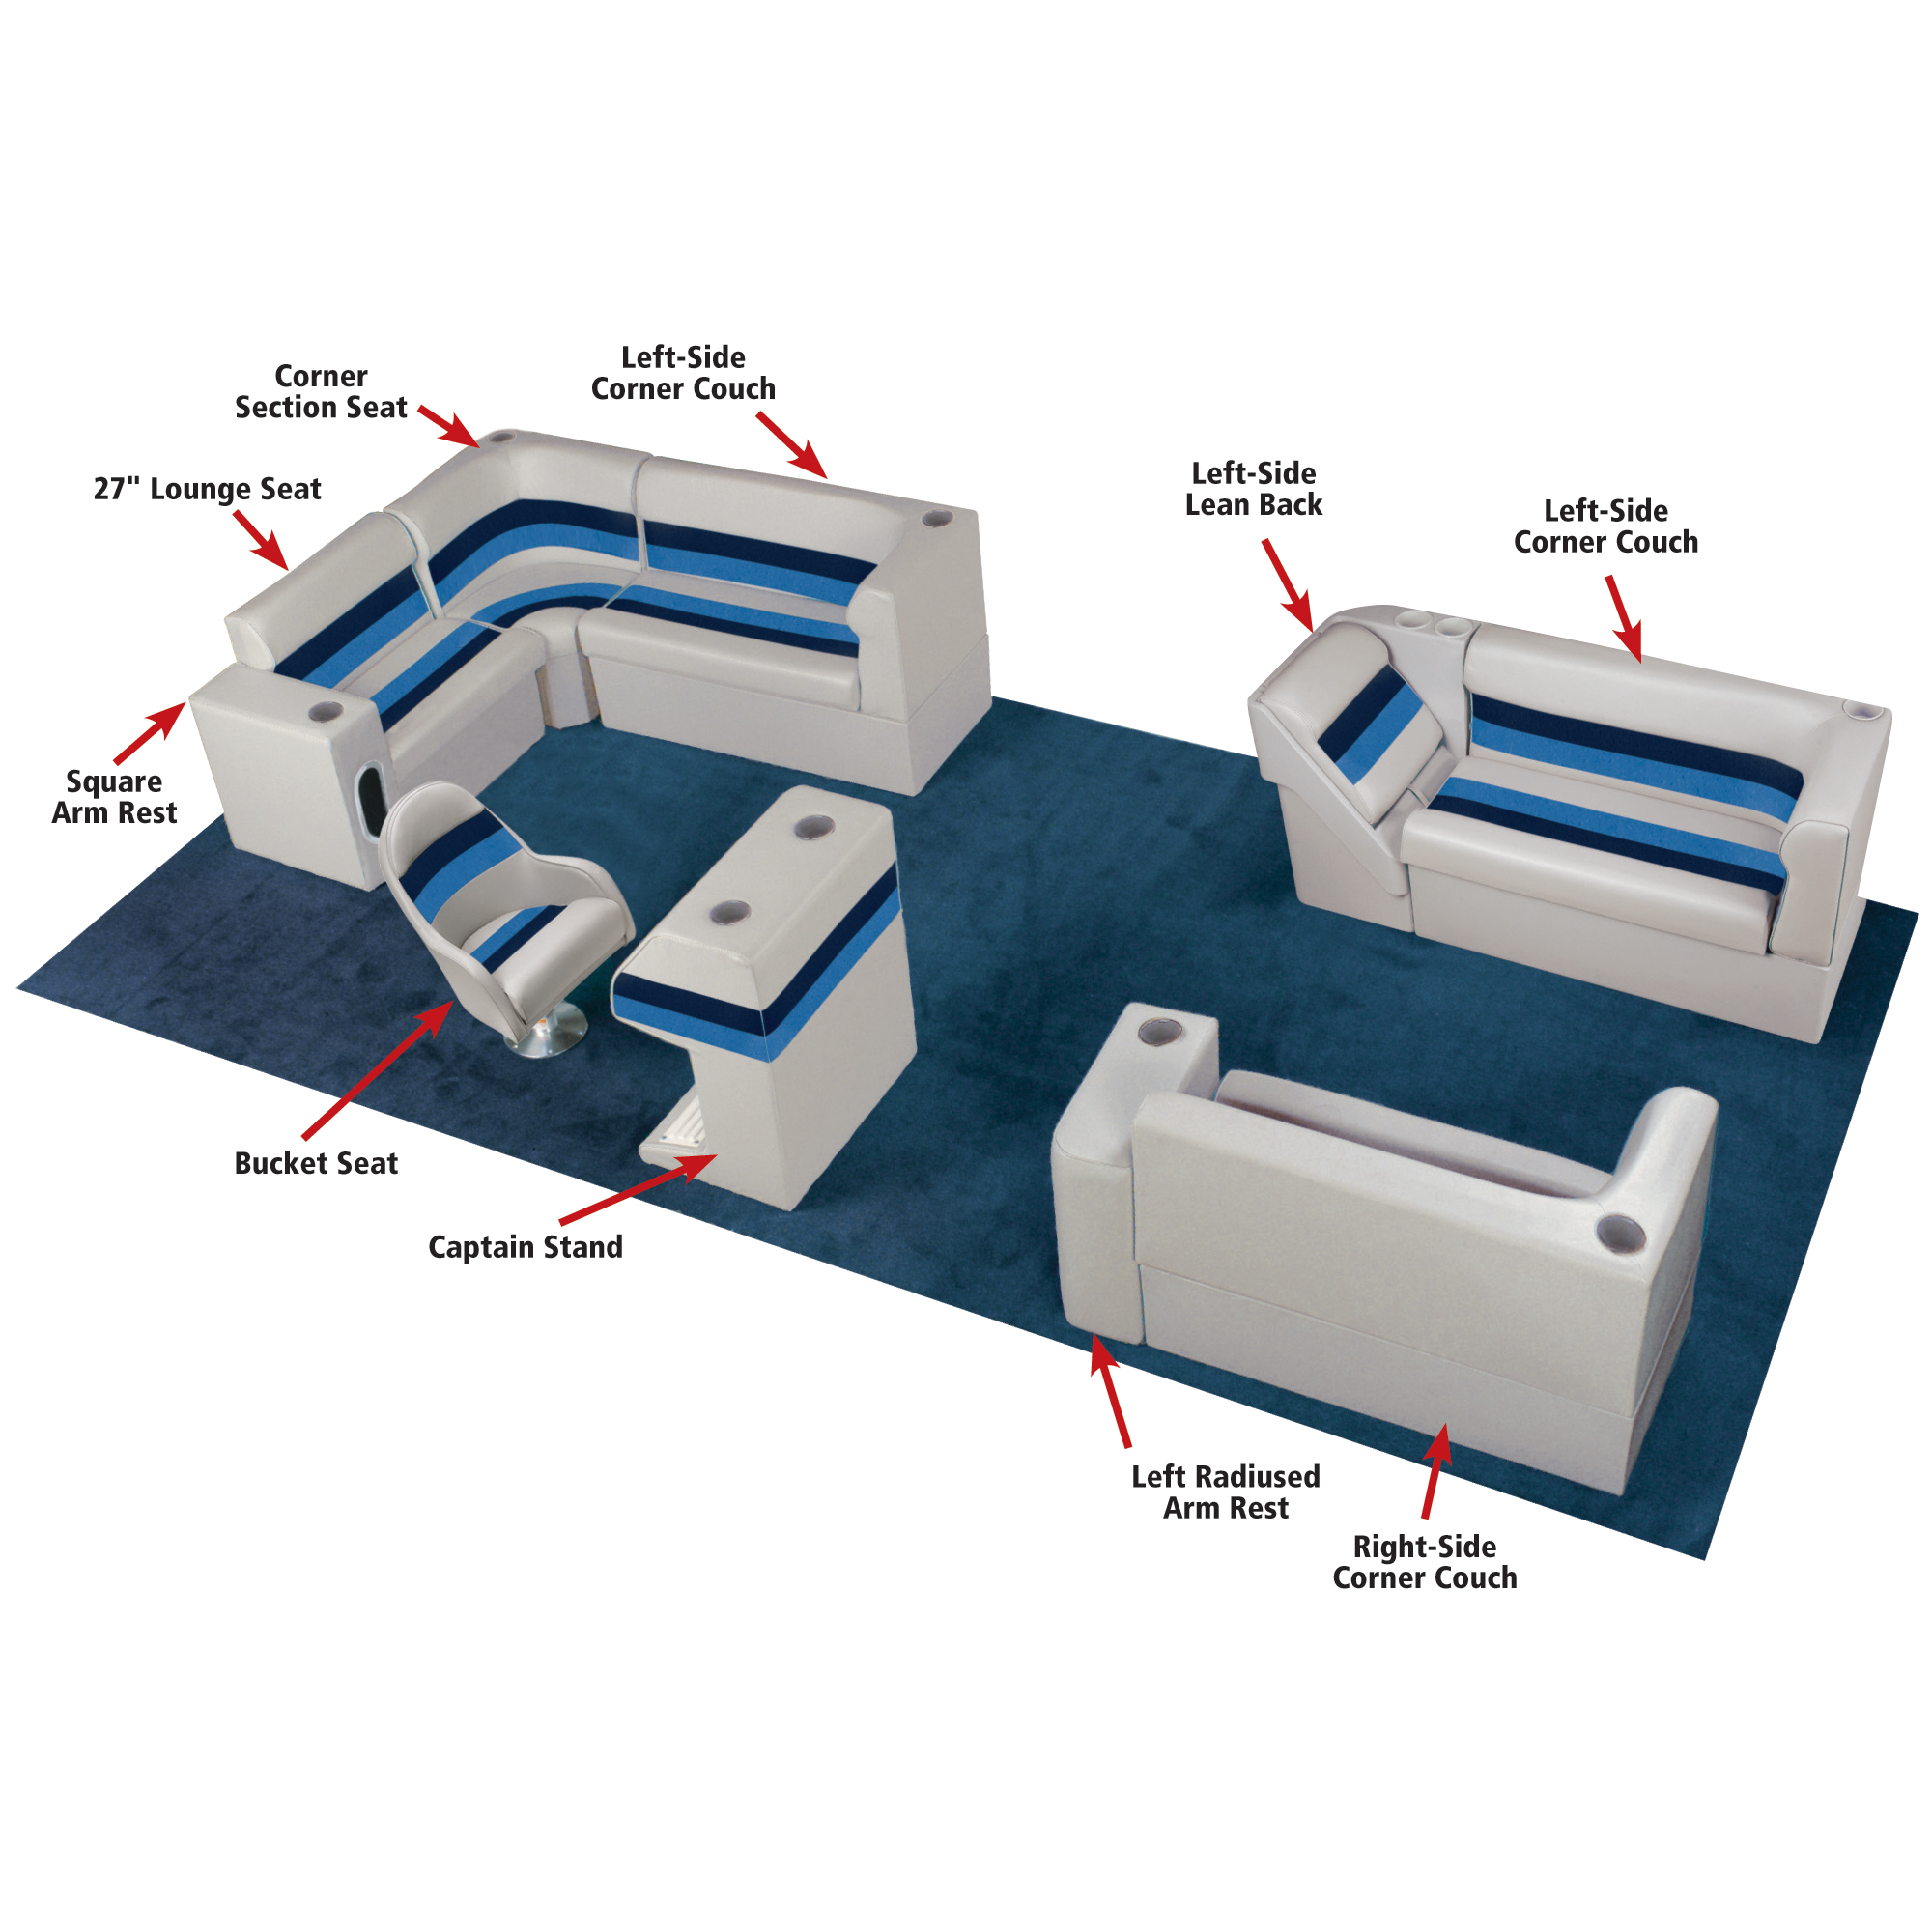 Toonmate Deluxe Pontoon Corner Couch w/Classic Base(no toe kick) Left Side Gray